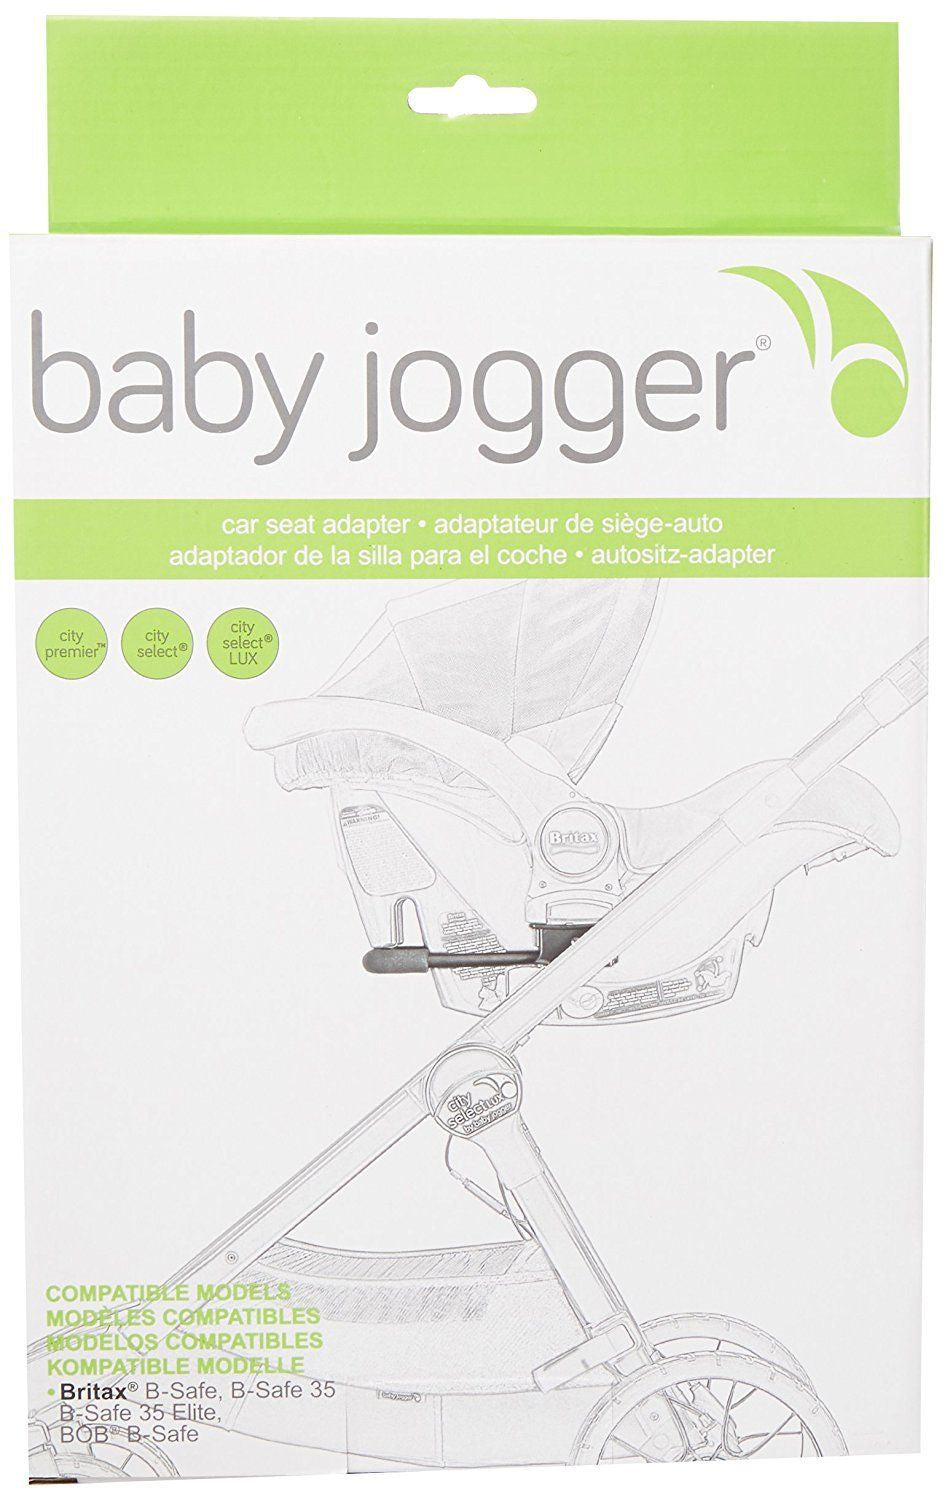 Baby Jogger City Select / LUX Car Seat Adapter - Britax B-Safe